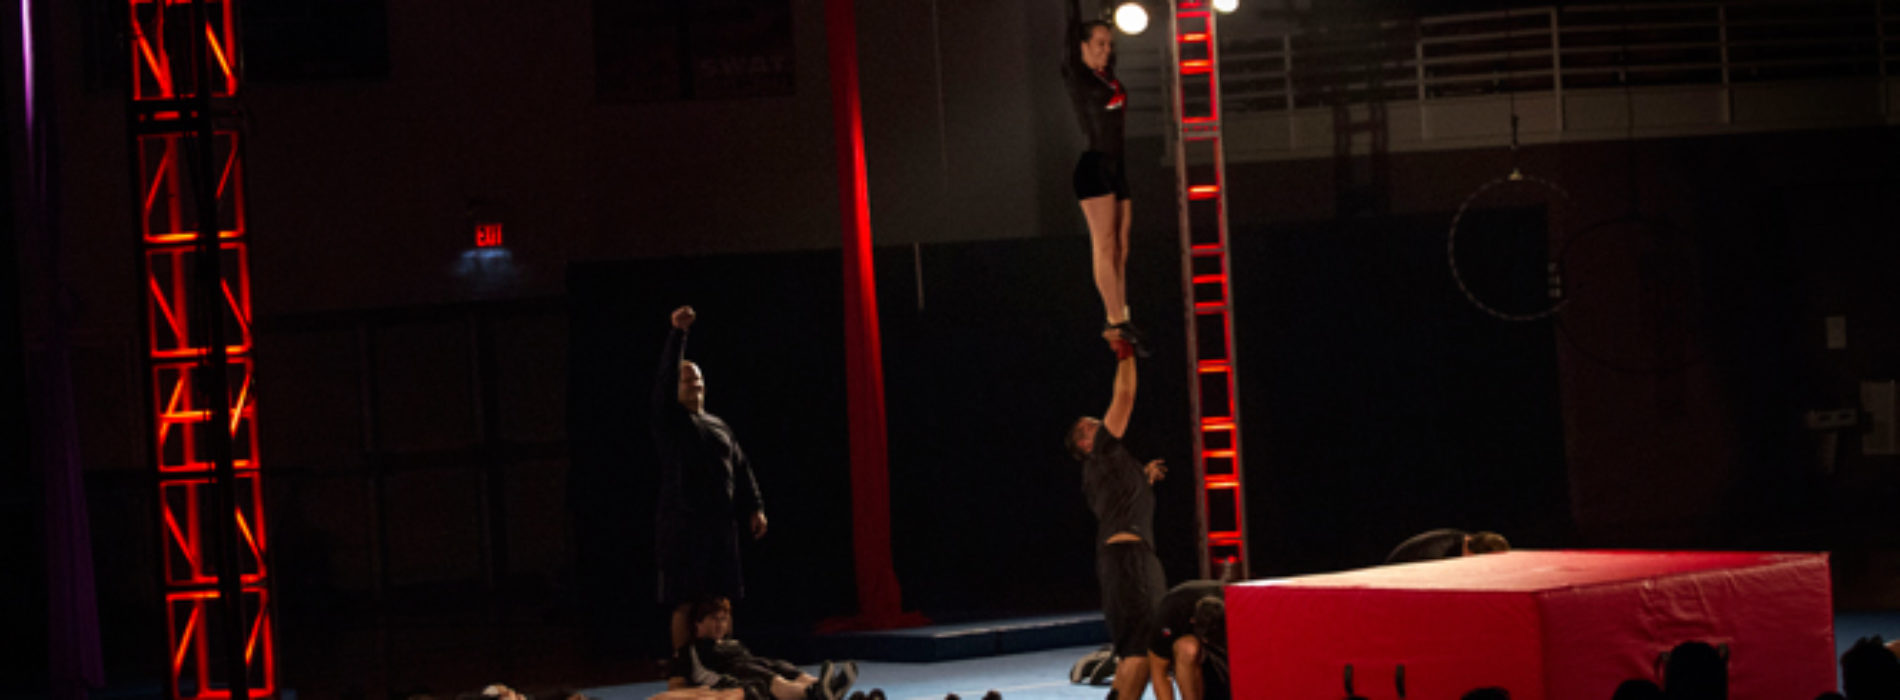 Southwestern To Host Acrofest Nov. 6-9